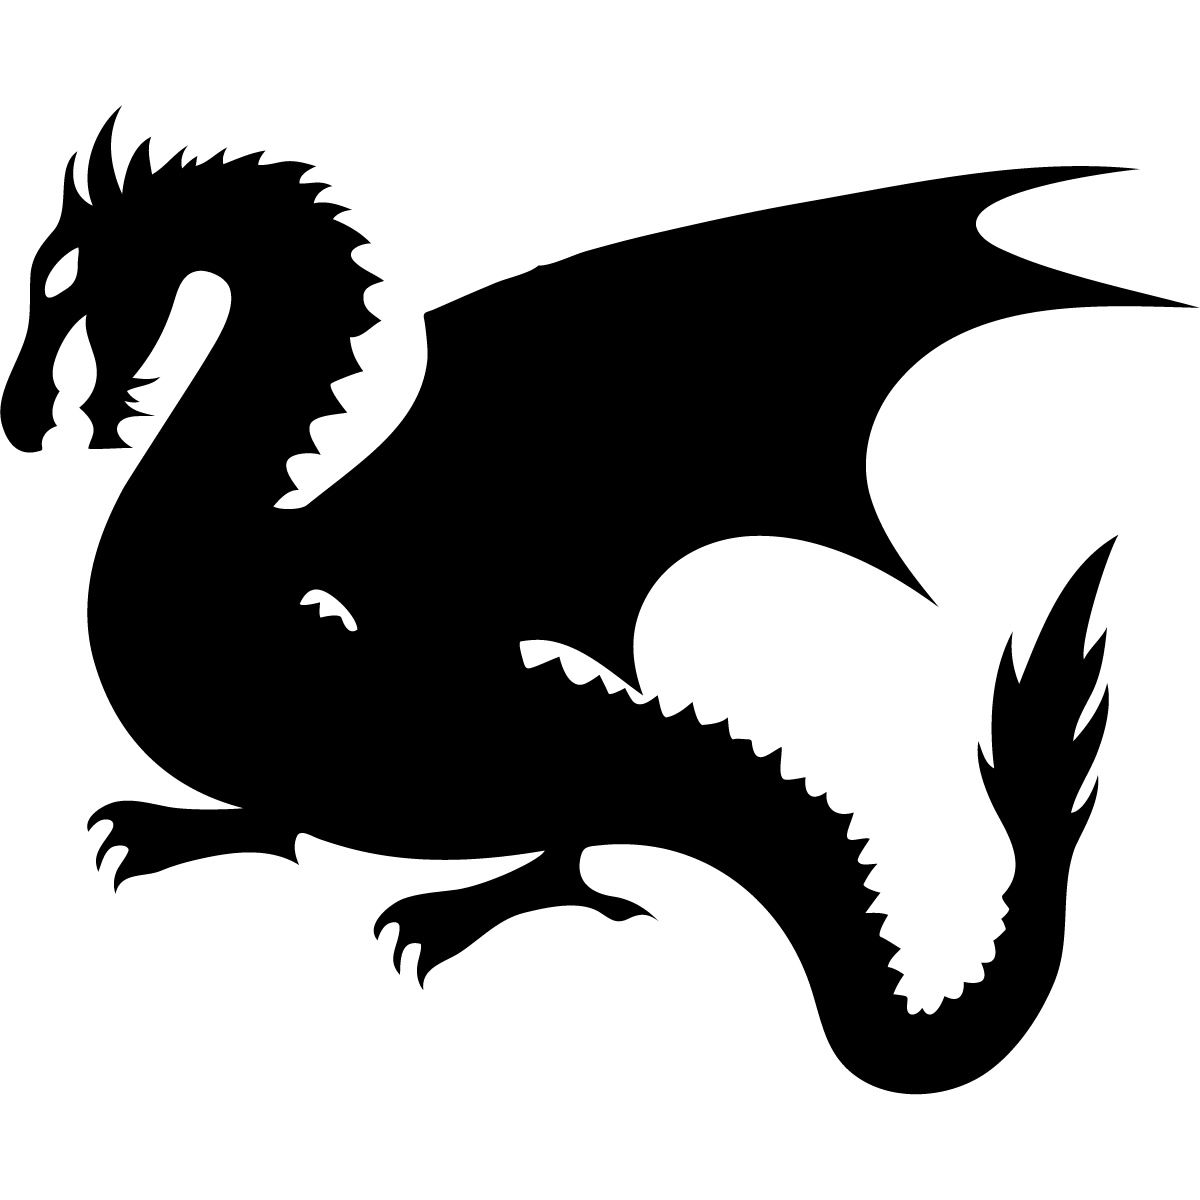 Dragon clipart free clipart royalty free library Cute baby dragon clipart free clipart images image 6 | Crafty Things ... clipart royalty free library